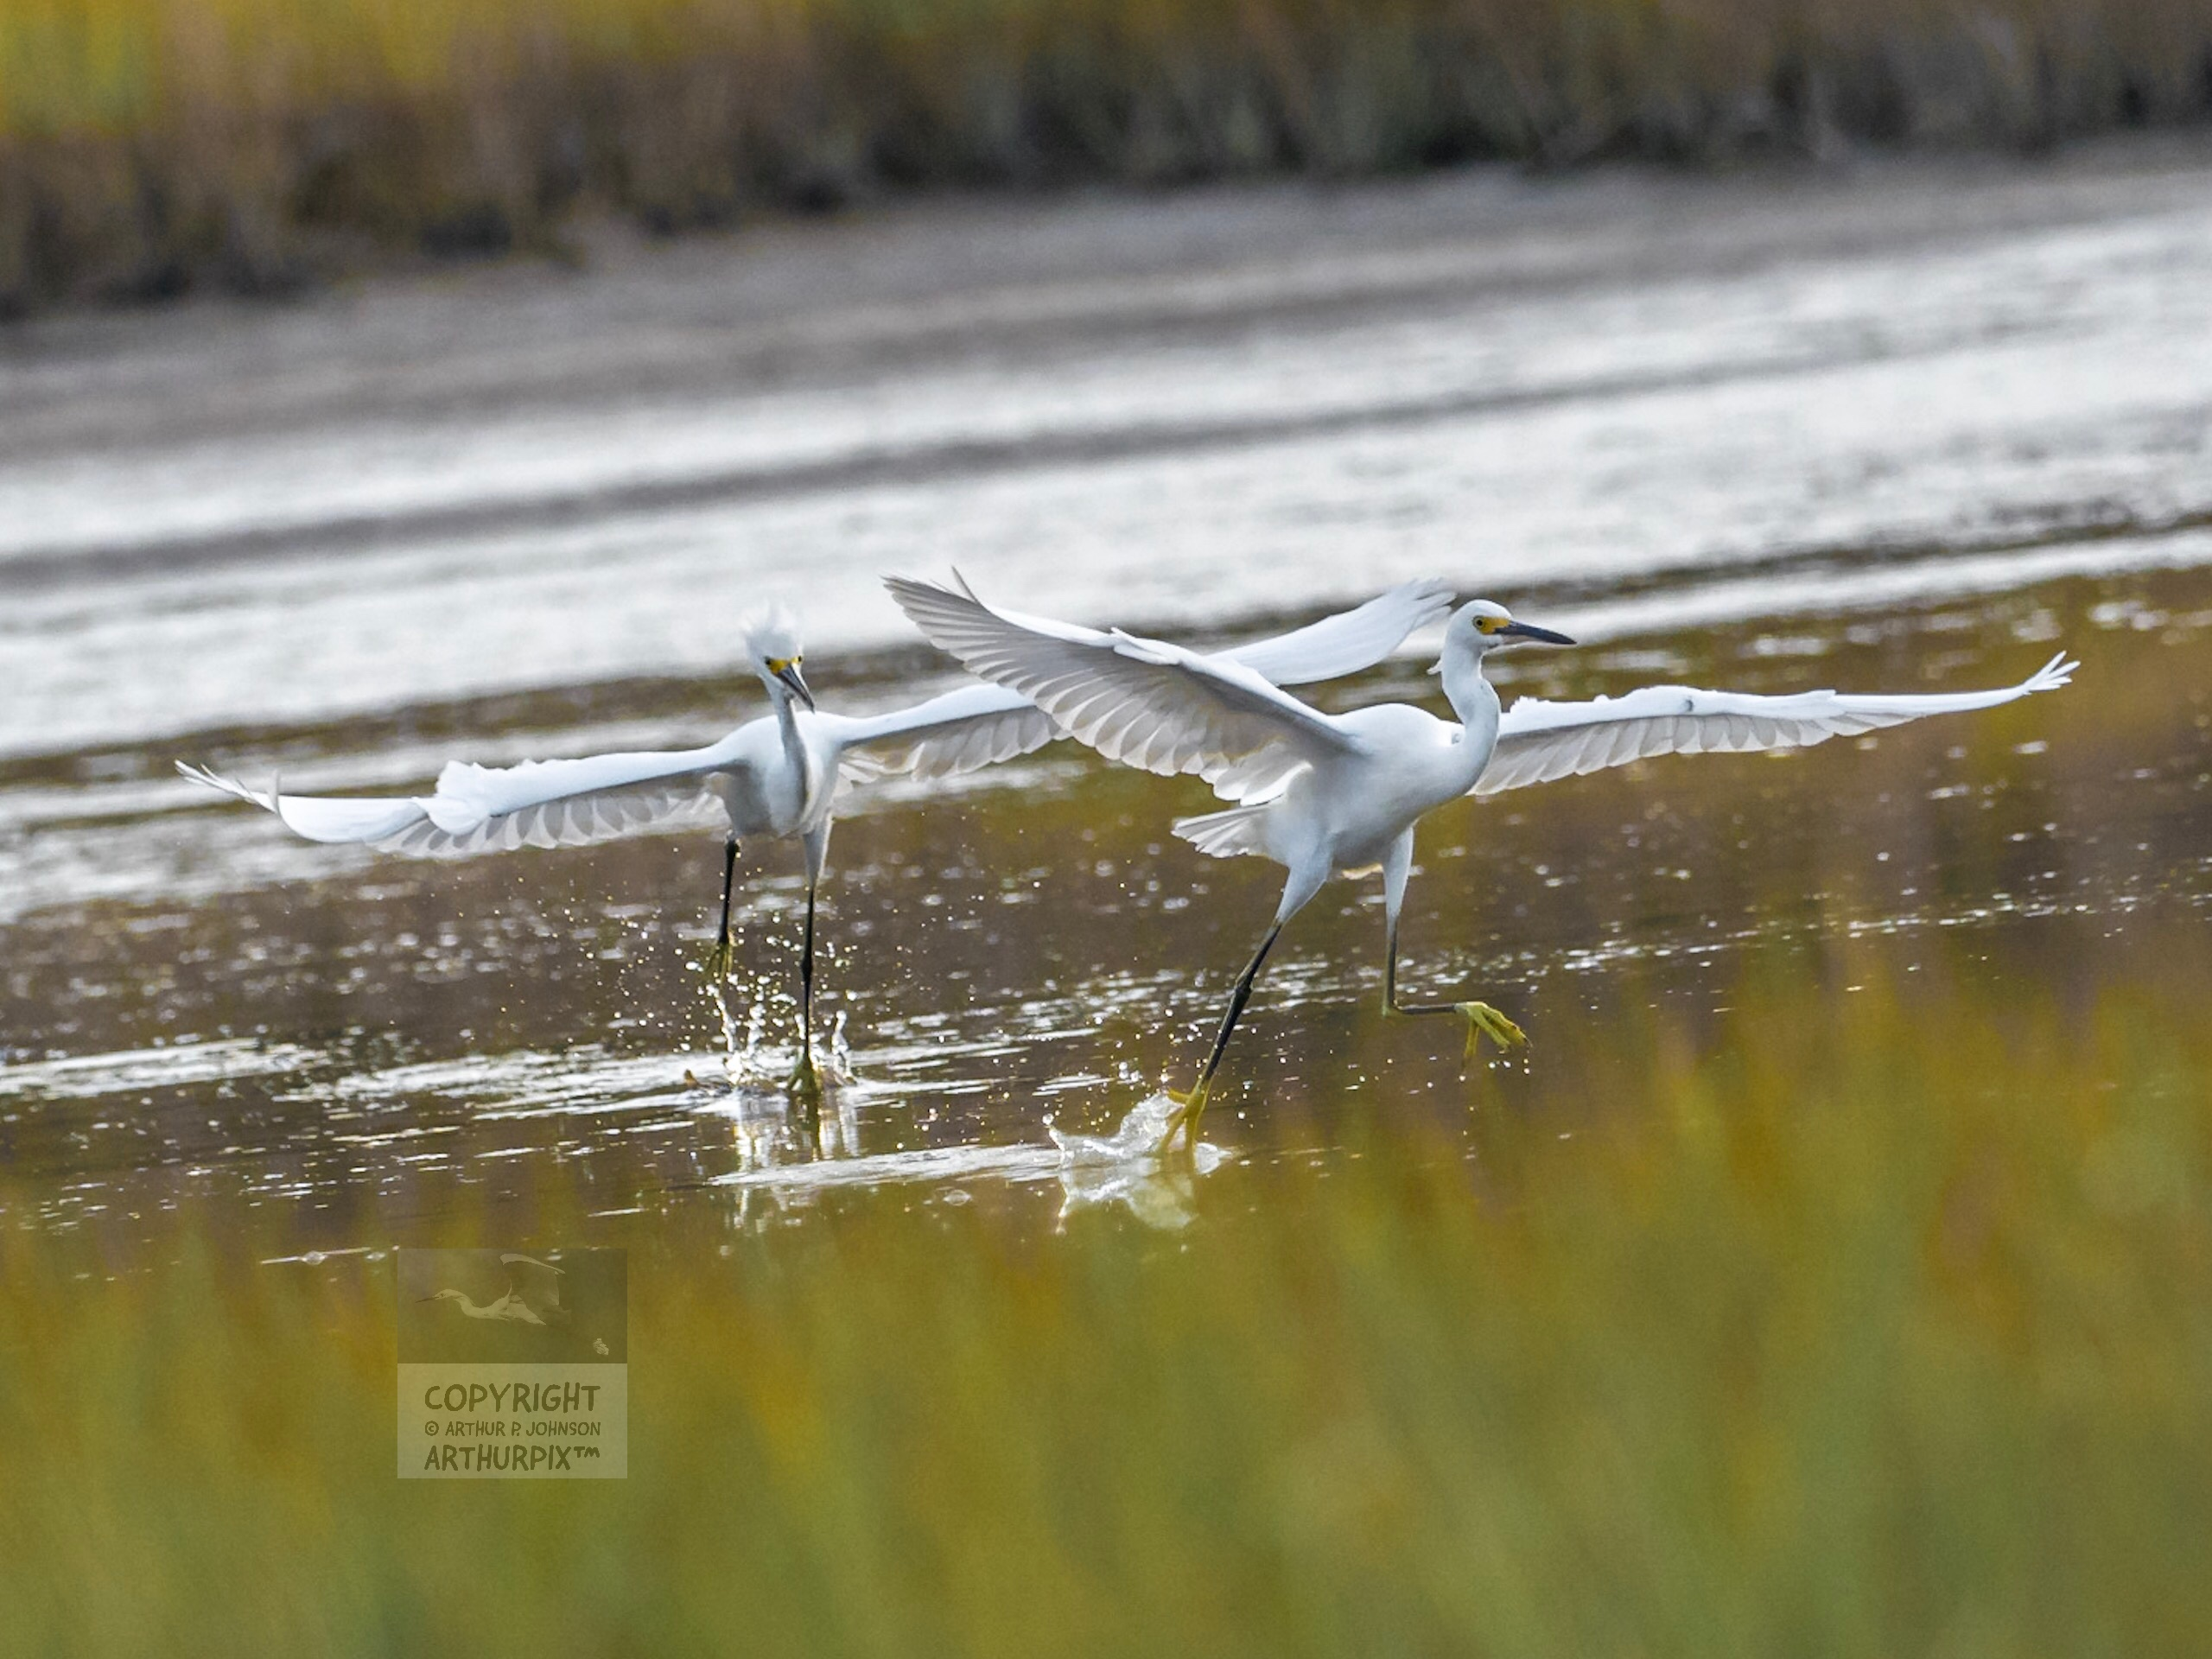 Two Juvenile Great Egrets, Wings Extended, Running